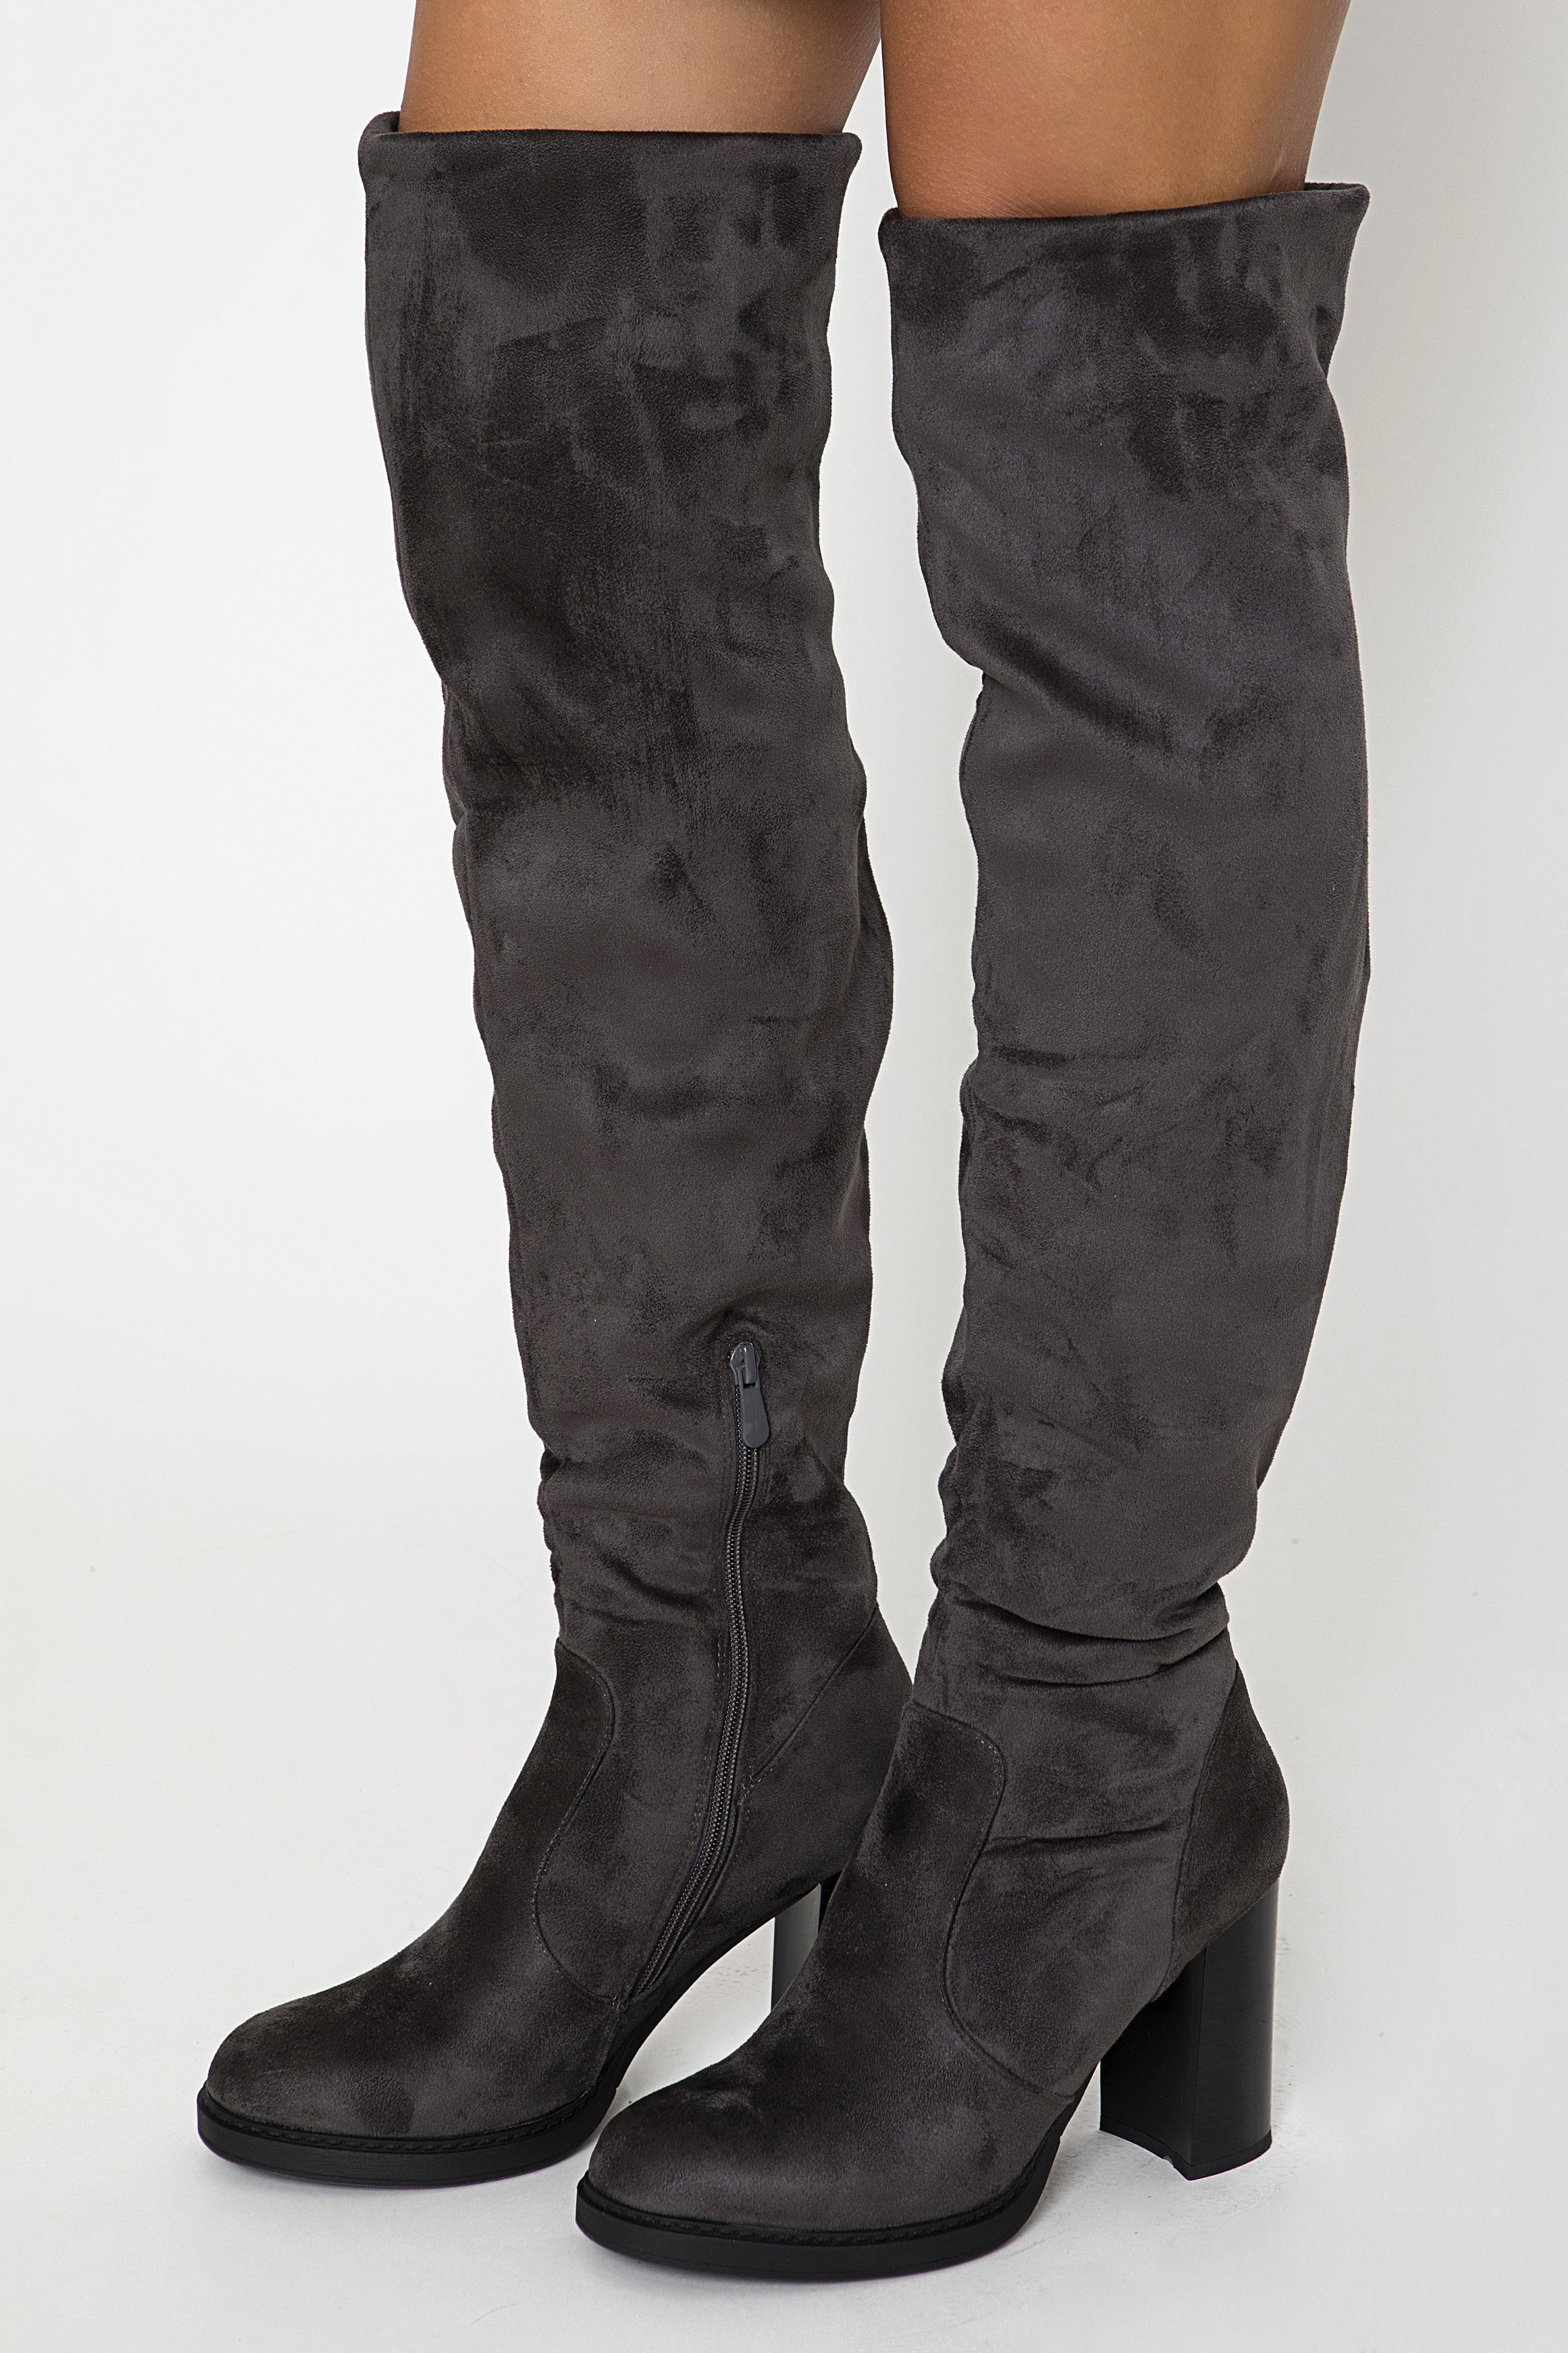 OVER THE KNEE BOOTS - Γκρι